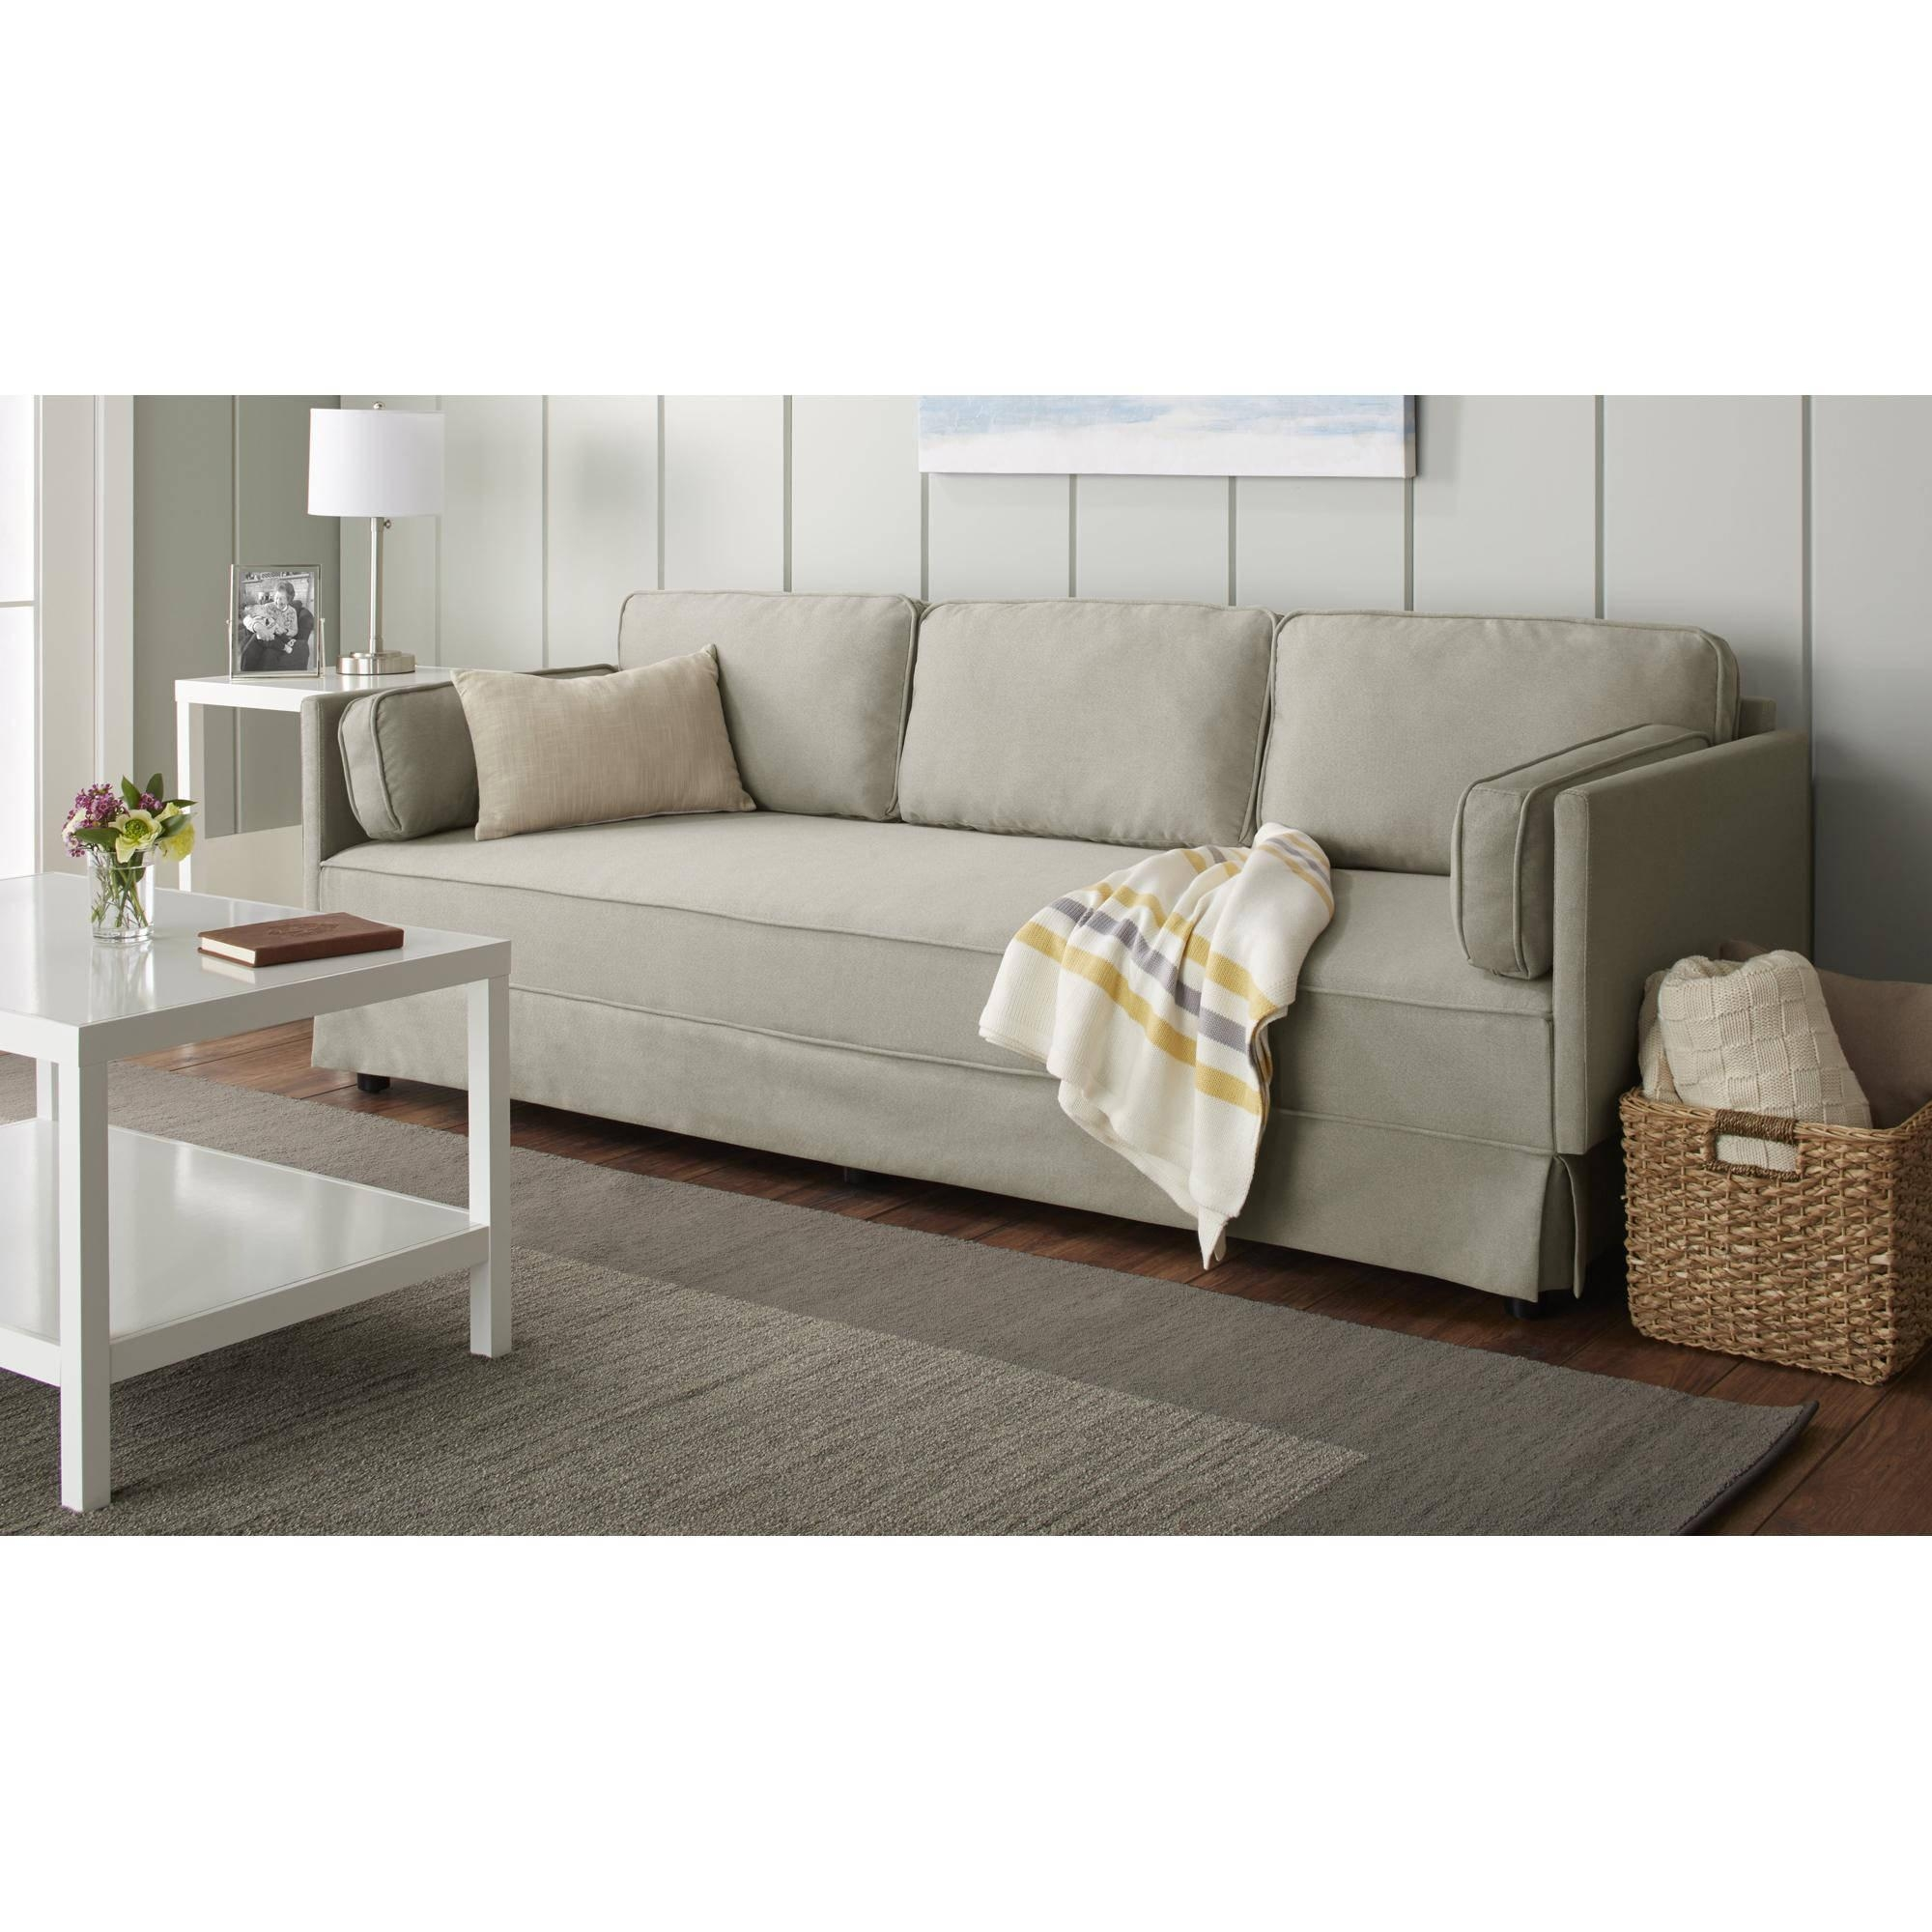 10 Spring Street Durant Sofa, Multiple Colors - Walmart with Wallmart Sofa